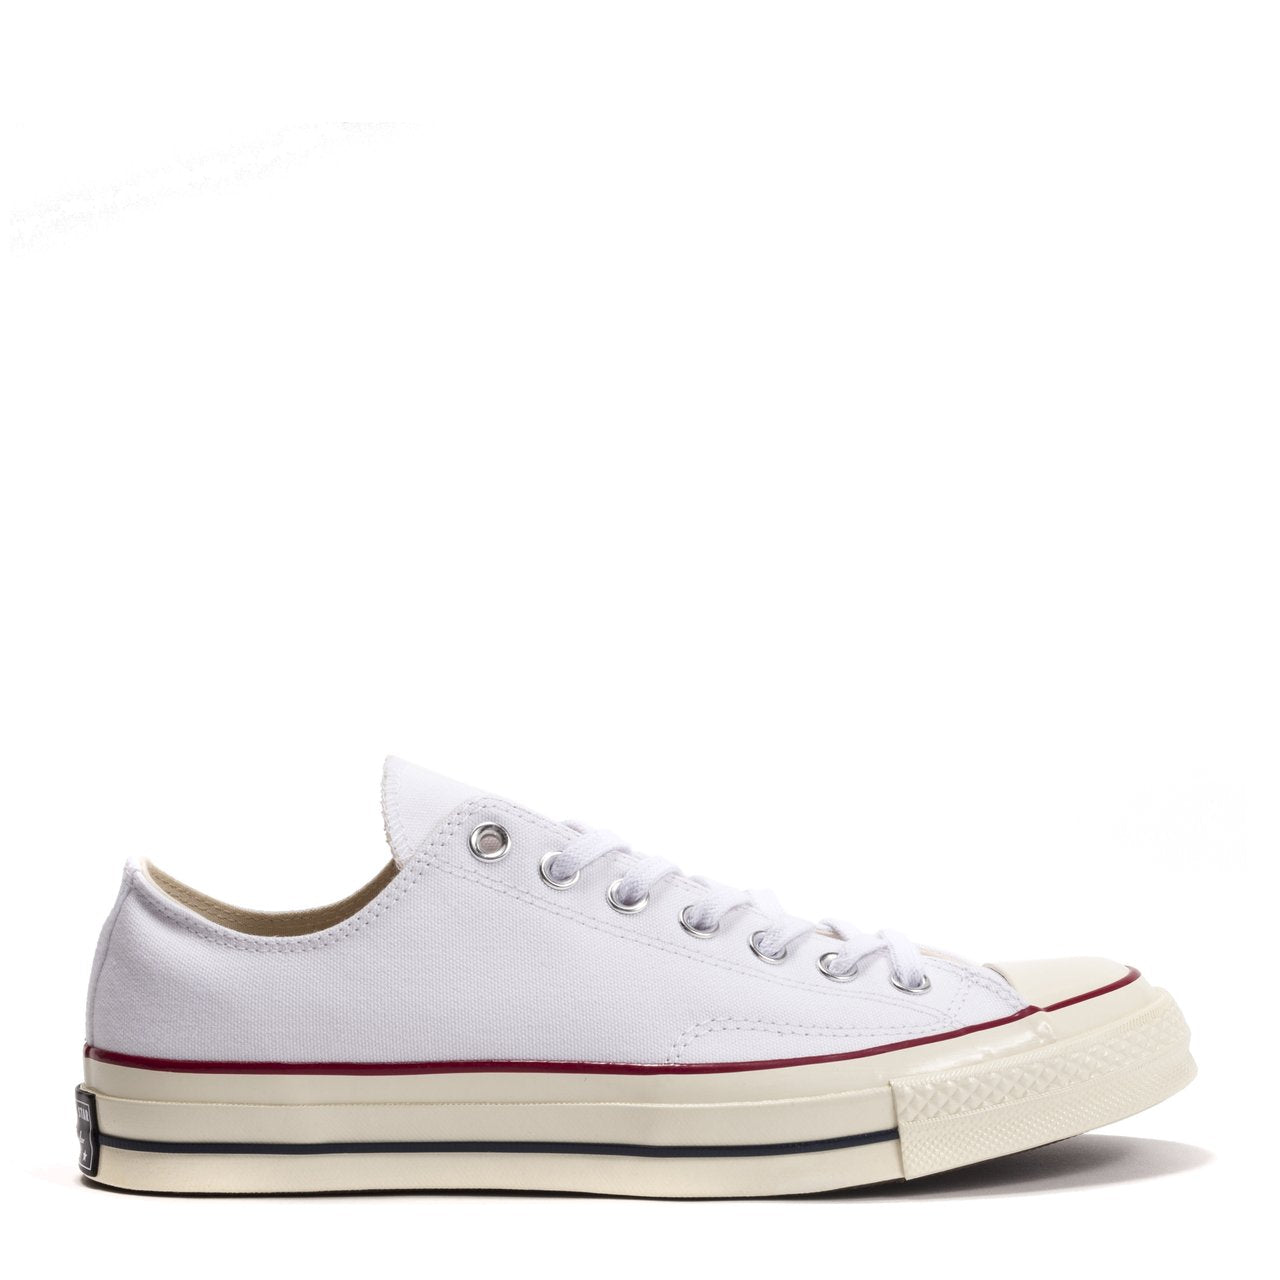 387c23e0706e Mens Converse Chuck Taylor All Star 70 Low Top White Garnet Egret 162065C